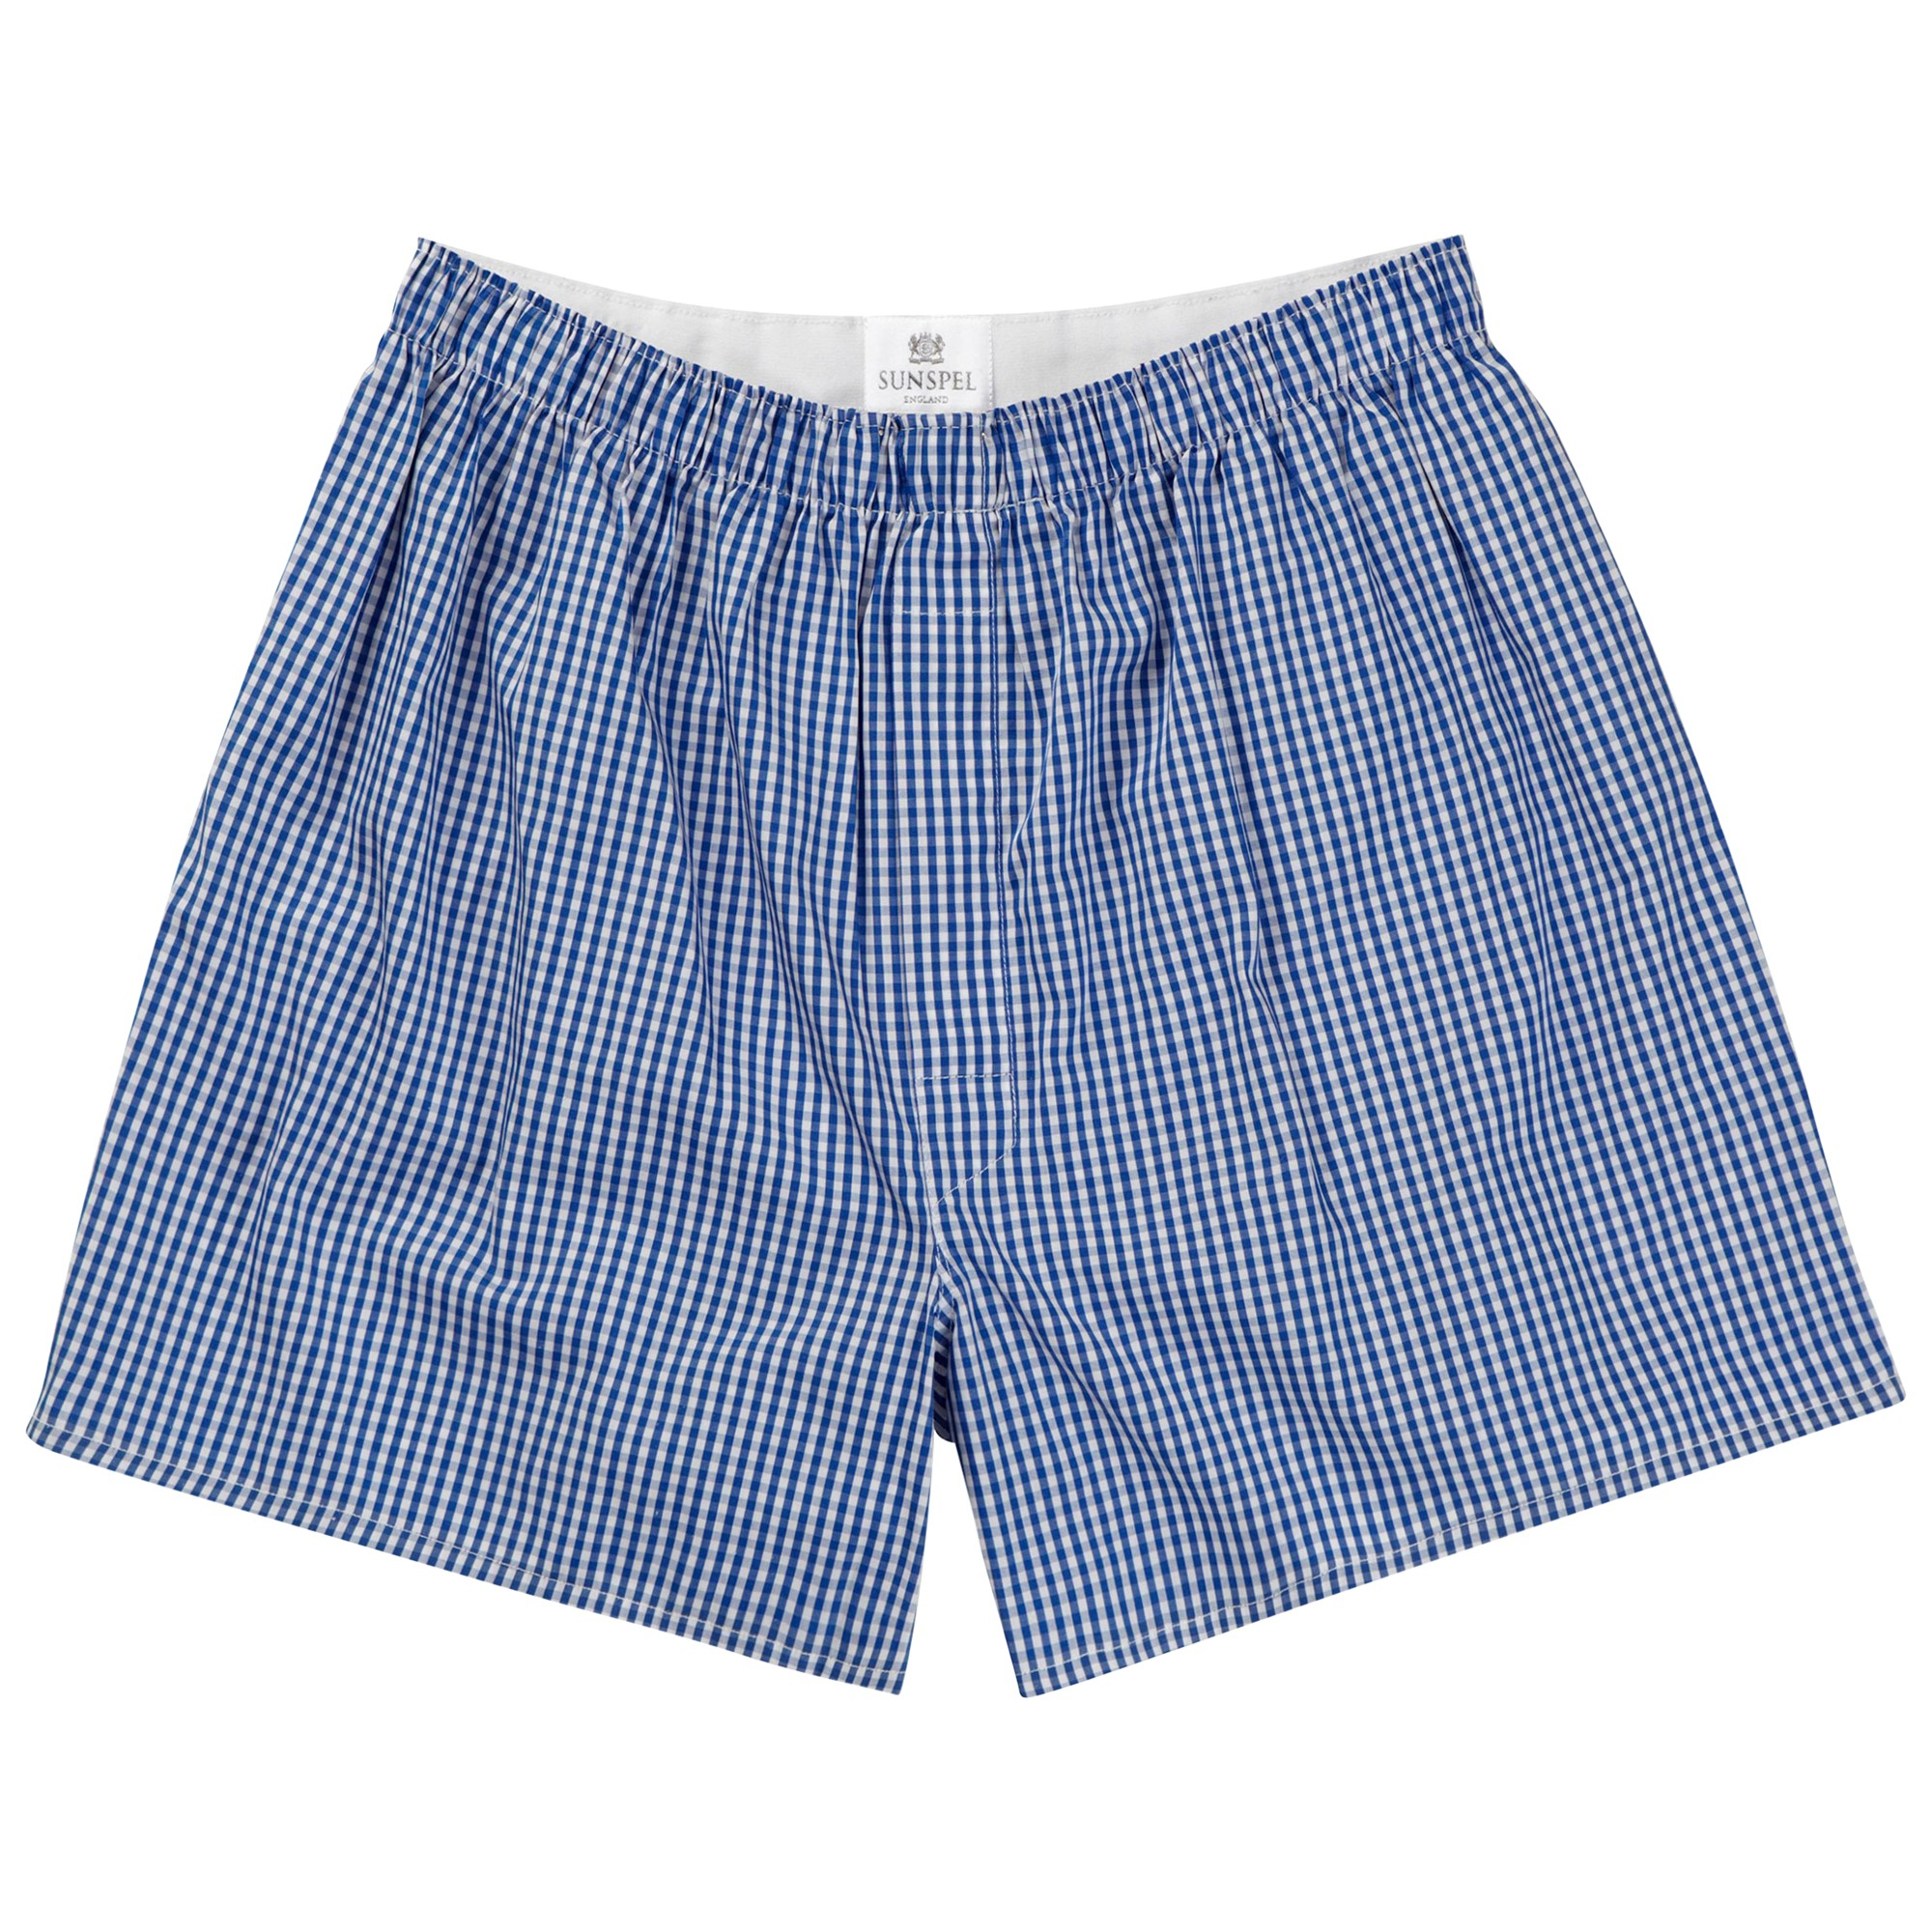 These men's cotton boxer briefs are made from a percent ring spun Polo Ralph Lauren Mens Classic Fit w/Wicking 5-Pack Boxers. by Polo Ralph Lauren. $ $ 59 FREE Shipping on eligible orders. Jockey Men's Cotton Staycool+ Mid-Rise Boxer Briefs, Pack of 3. by Jockey.